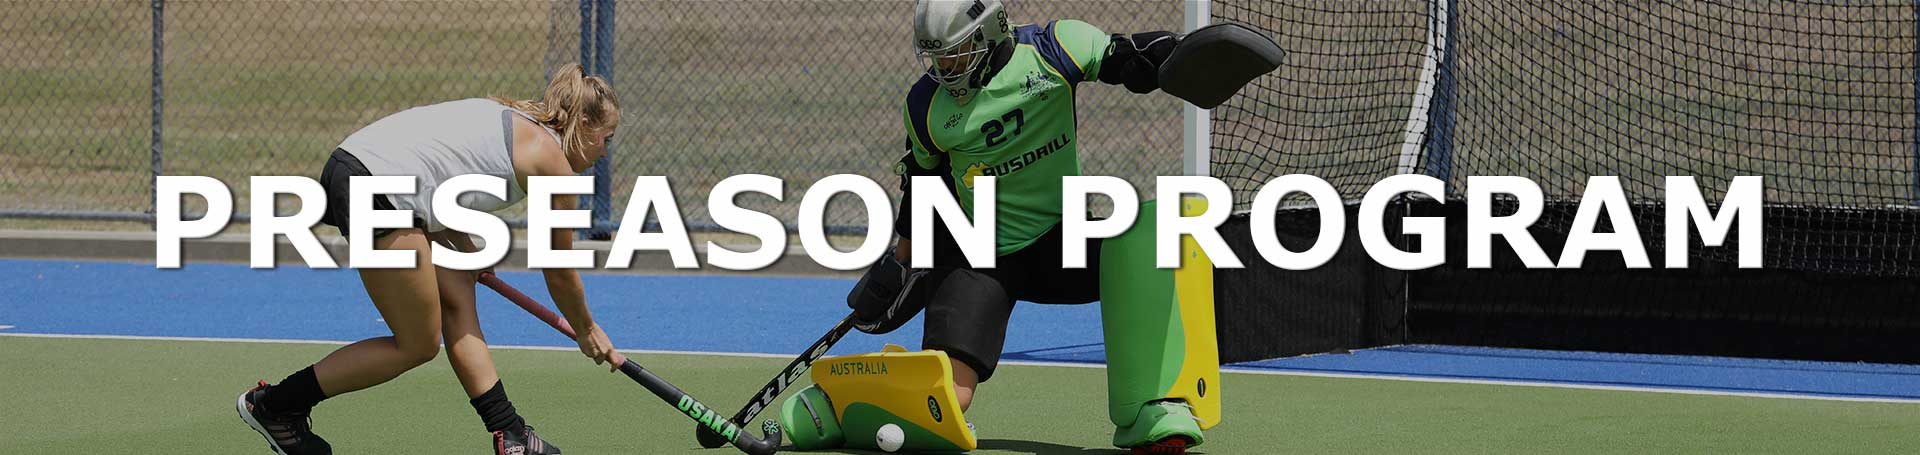 STOMP goalkeeper coaching videos